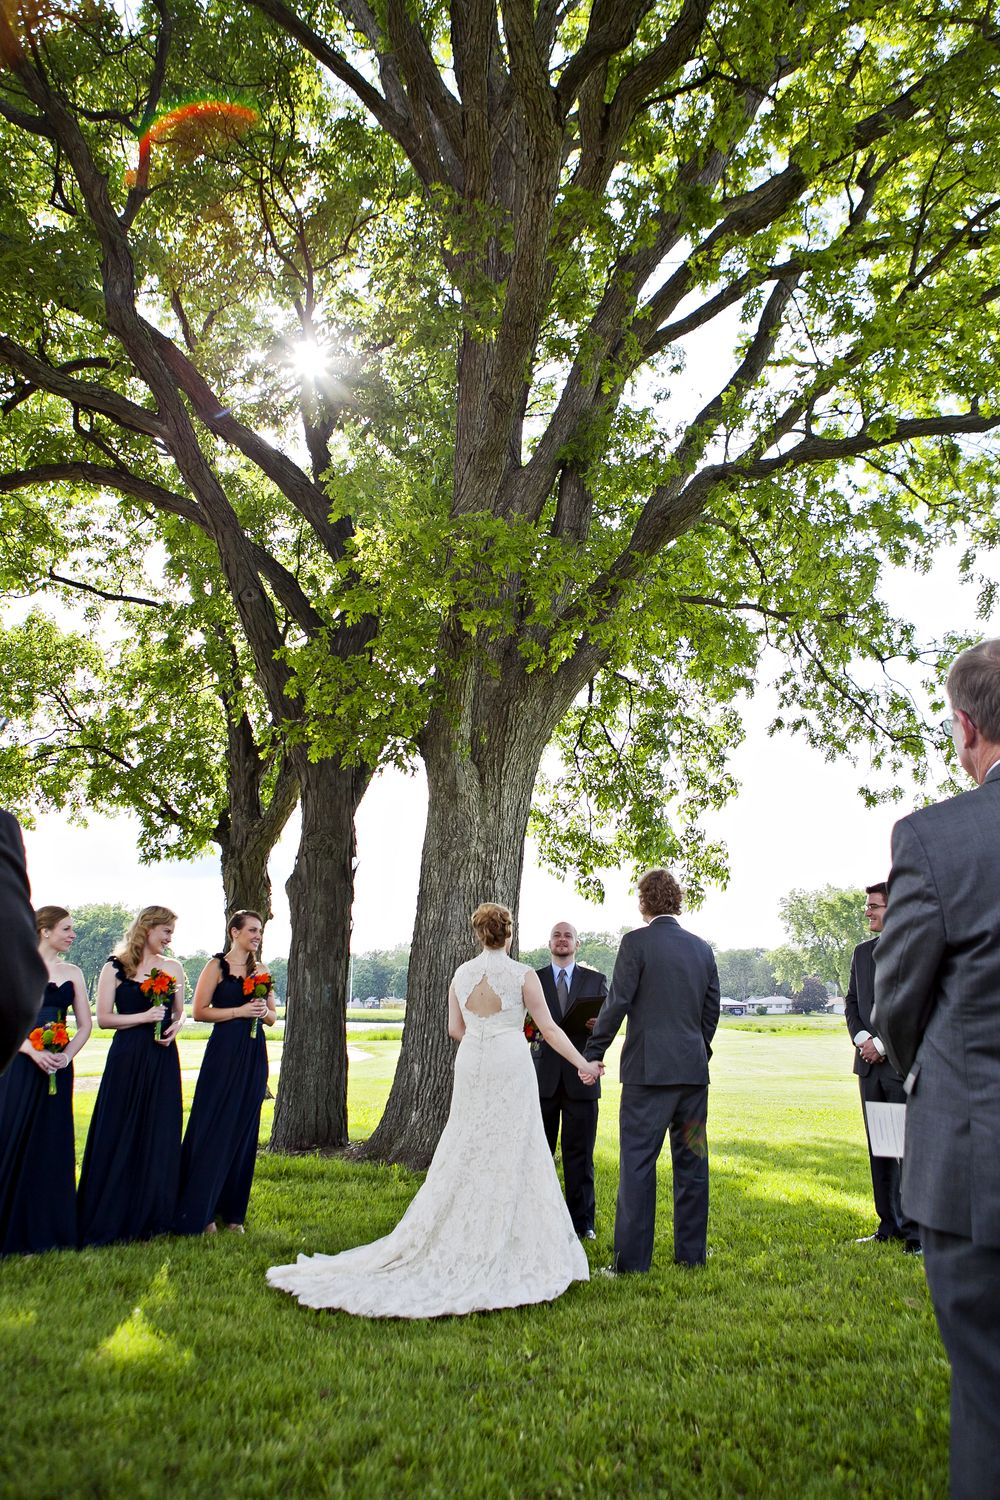 outdoor wedding // Madison, WI // bride and groom ceremony picture // couple wedding photos // outdoor wedding ceremony